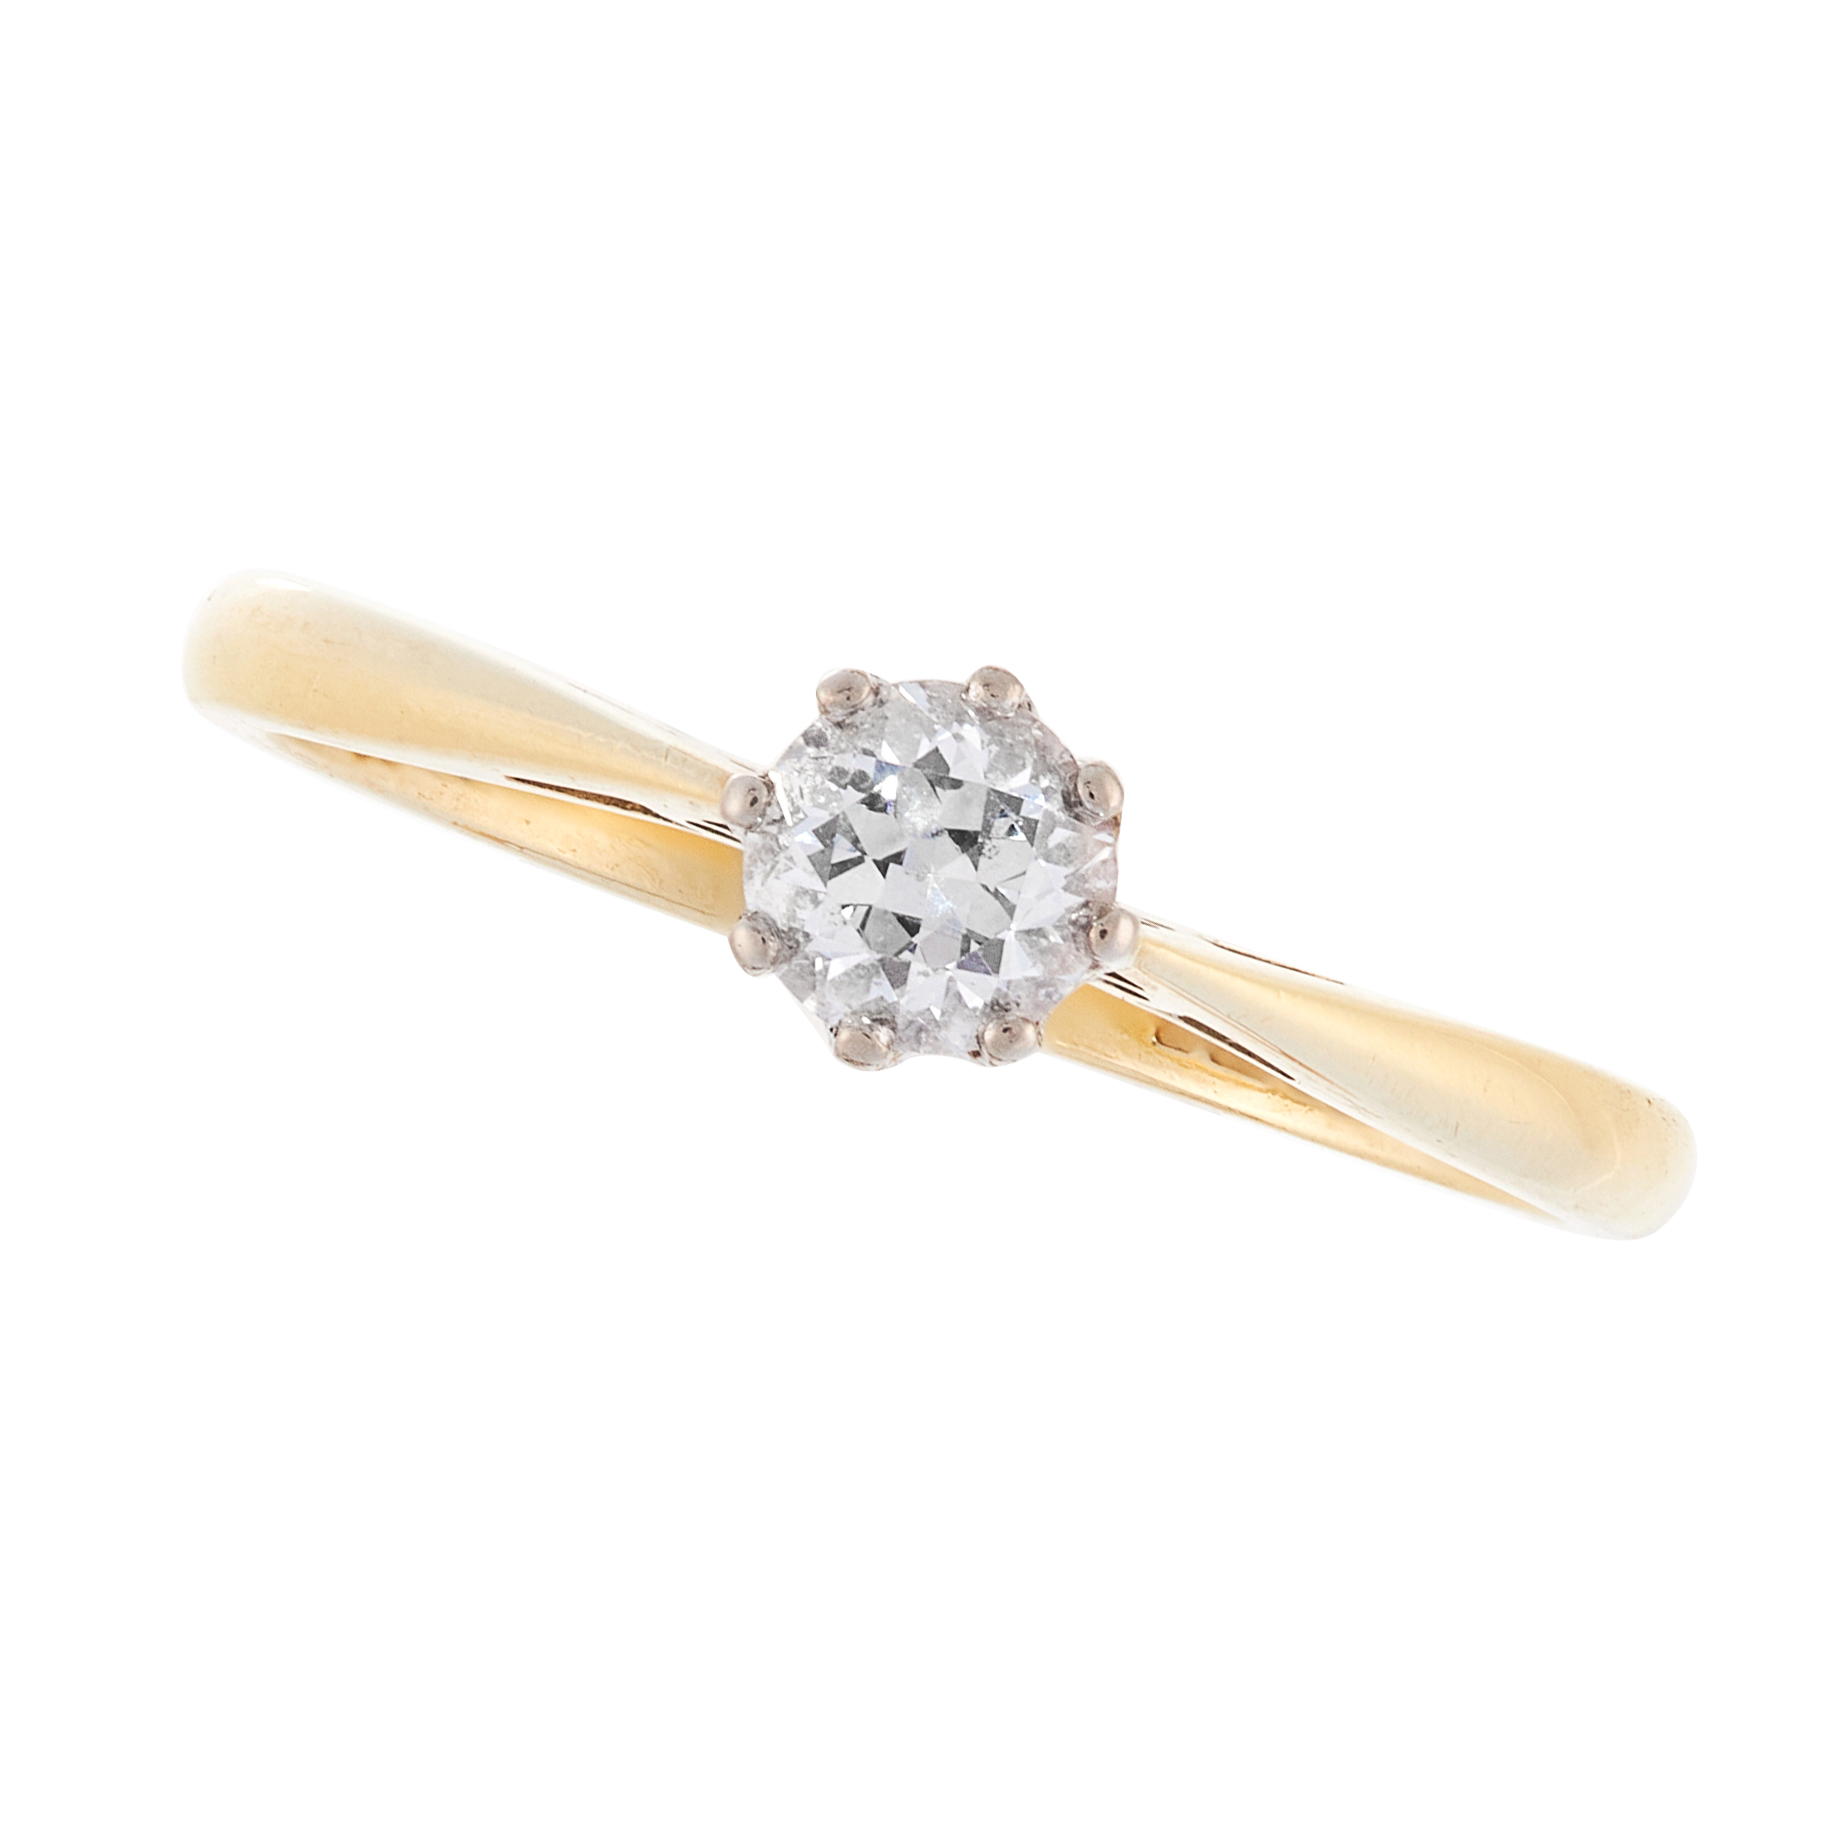 A SOLITAIRE DIAMOND DRESS RING in 18ct yellow gold, set with a round cut diamond of 0.38 carats